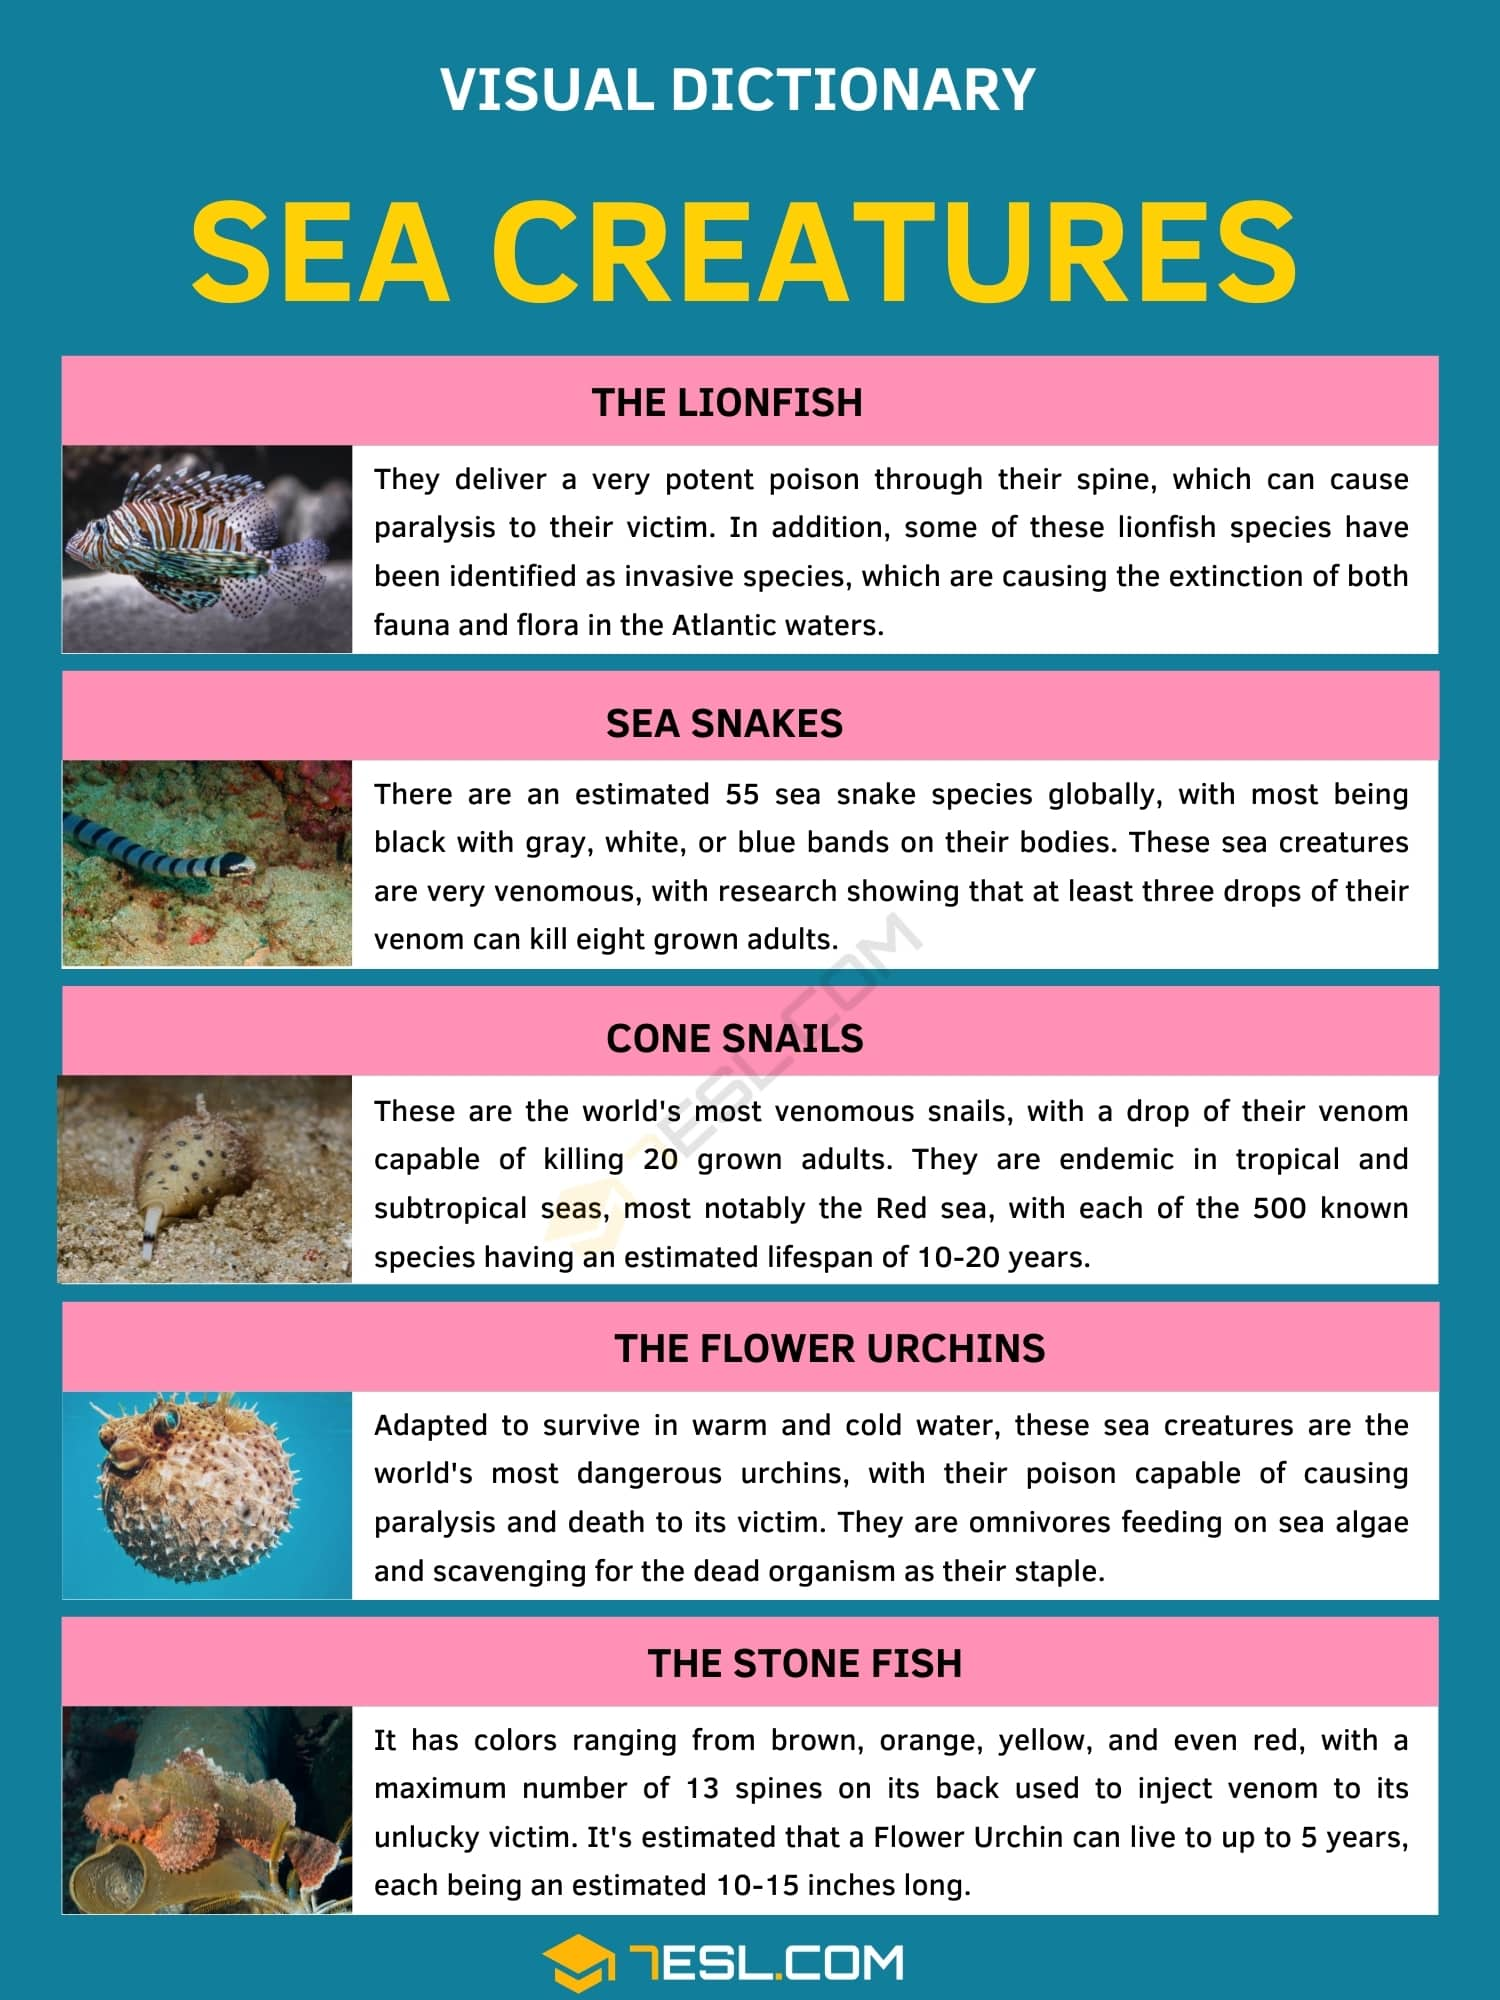 Sea Creatures | Top 5 Most Poisonous Creatures from the Sea